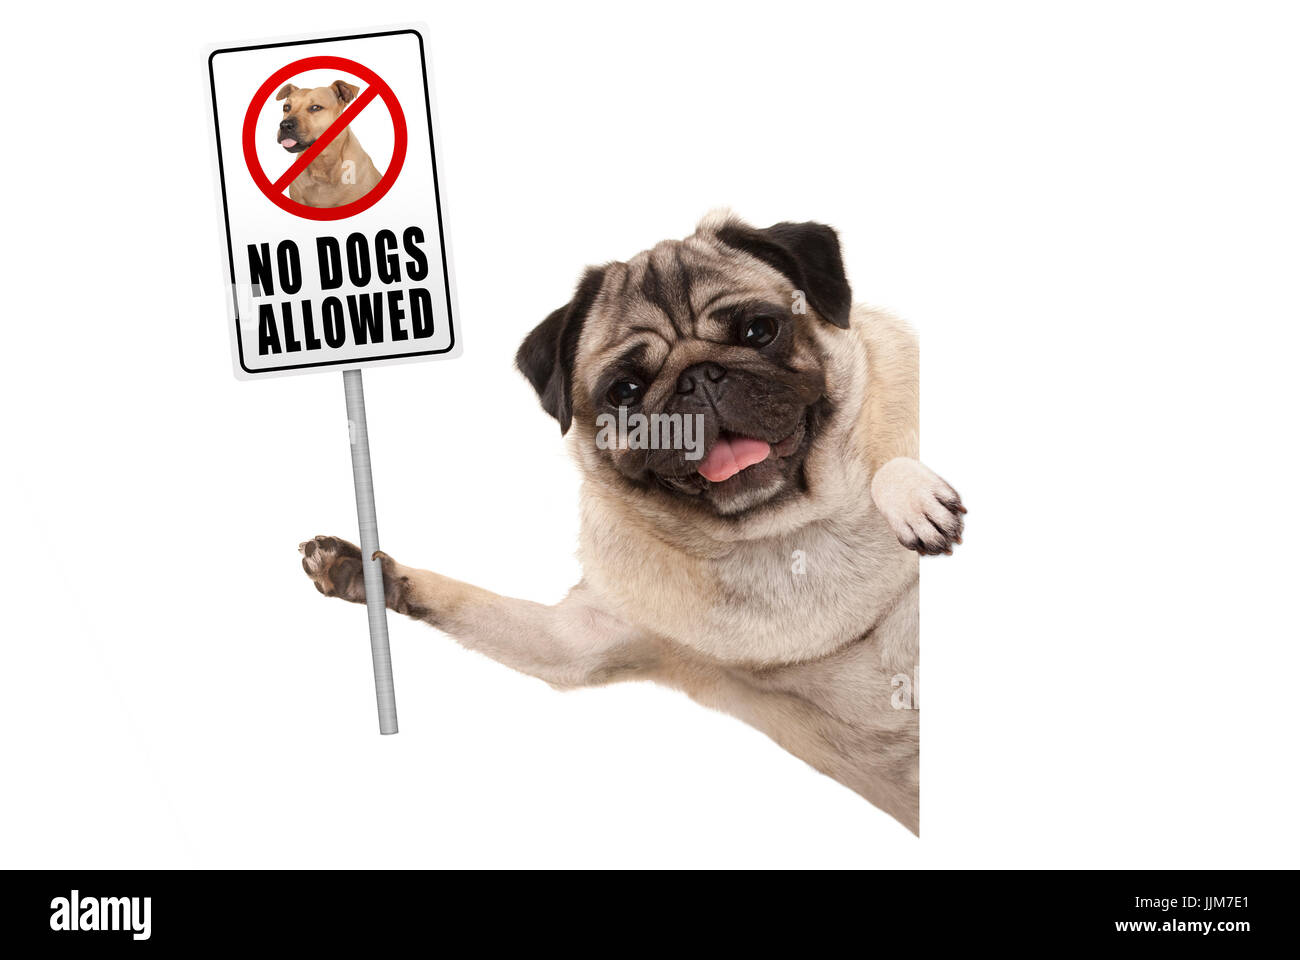 smiling pug puppy dog holding up prohibitory no dogs allowed sign, isolated on white background - Stock Image